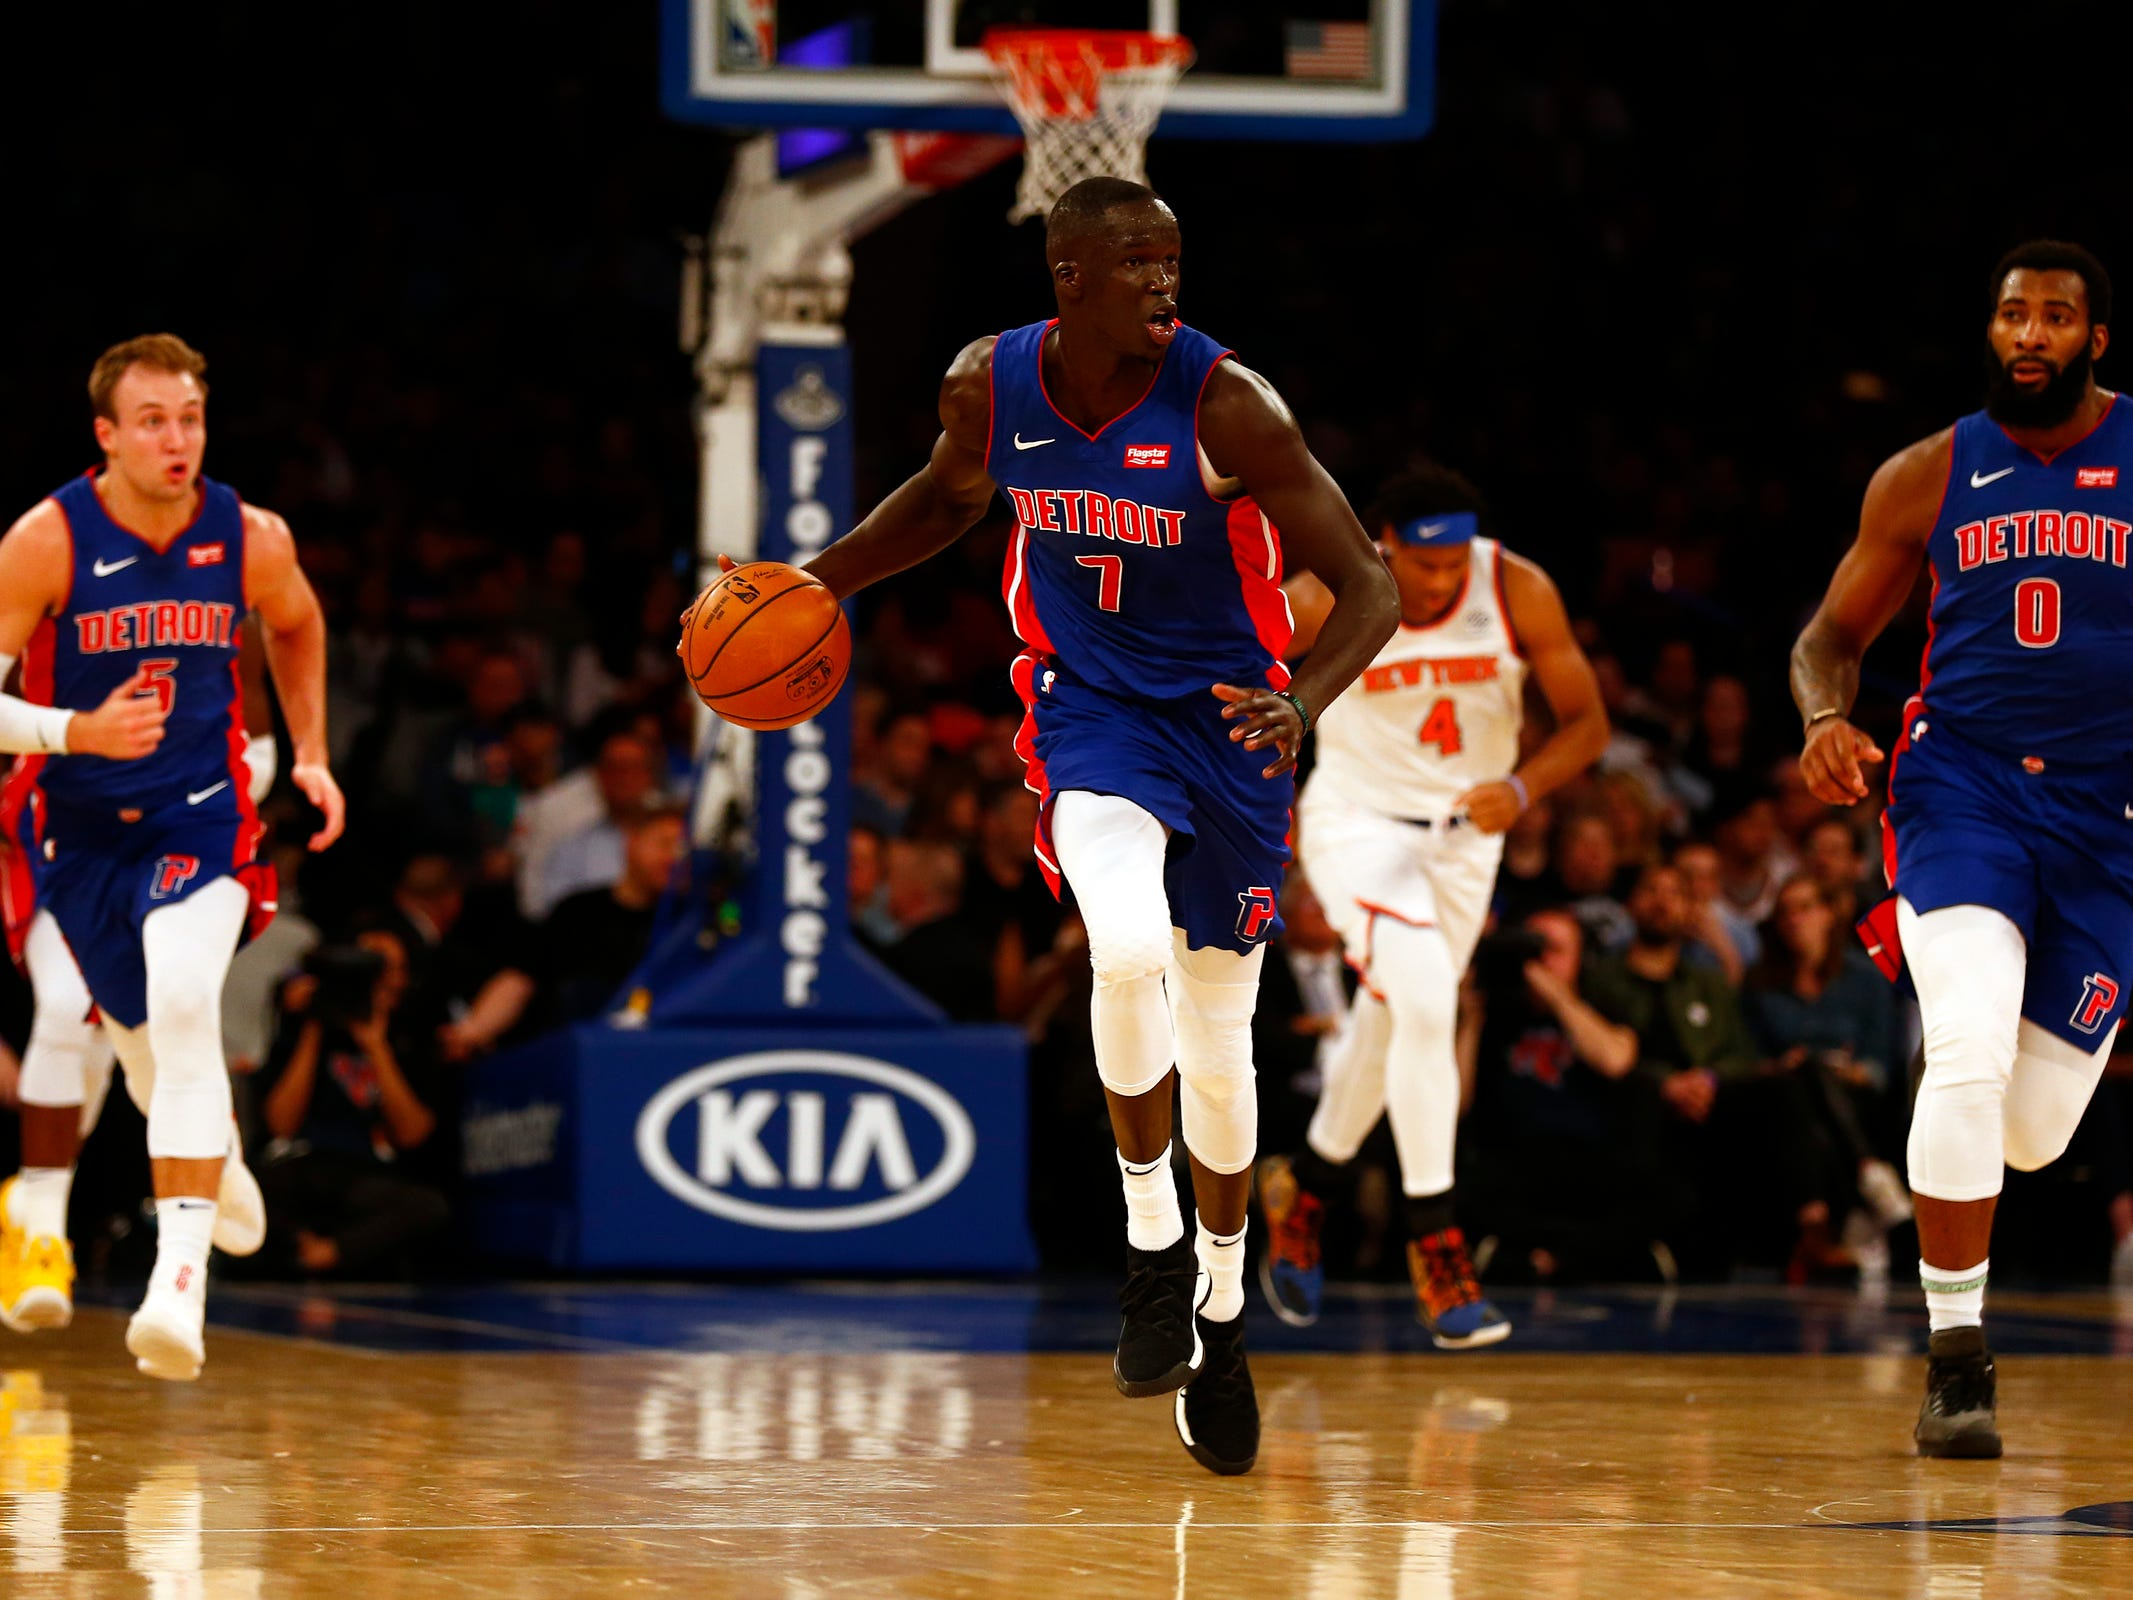 Detroit Pistons forward Thon Maker (7) brings the ball upcourt against the New York Knicks during the first half at Madison Square Garden on Wednesday, April 10, 2019.